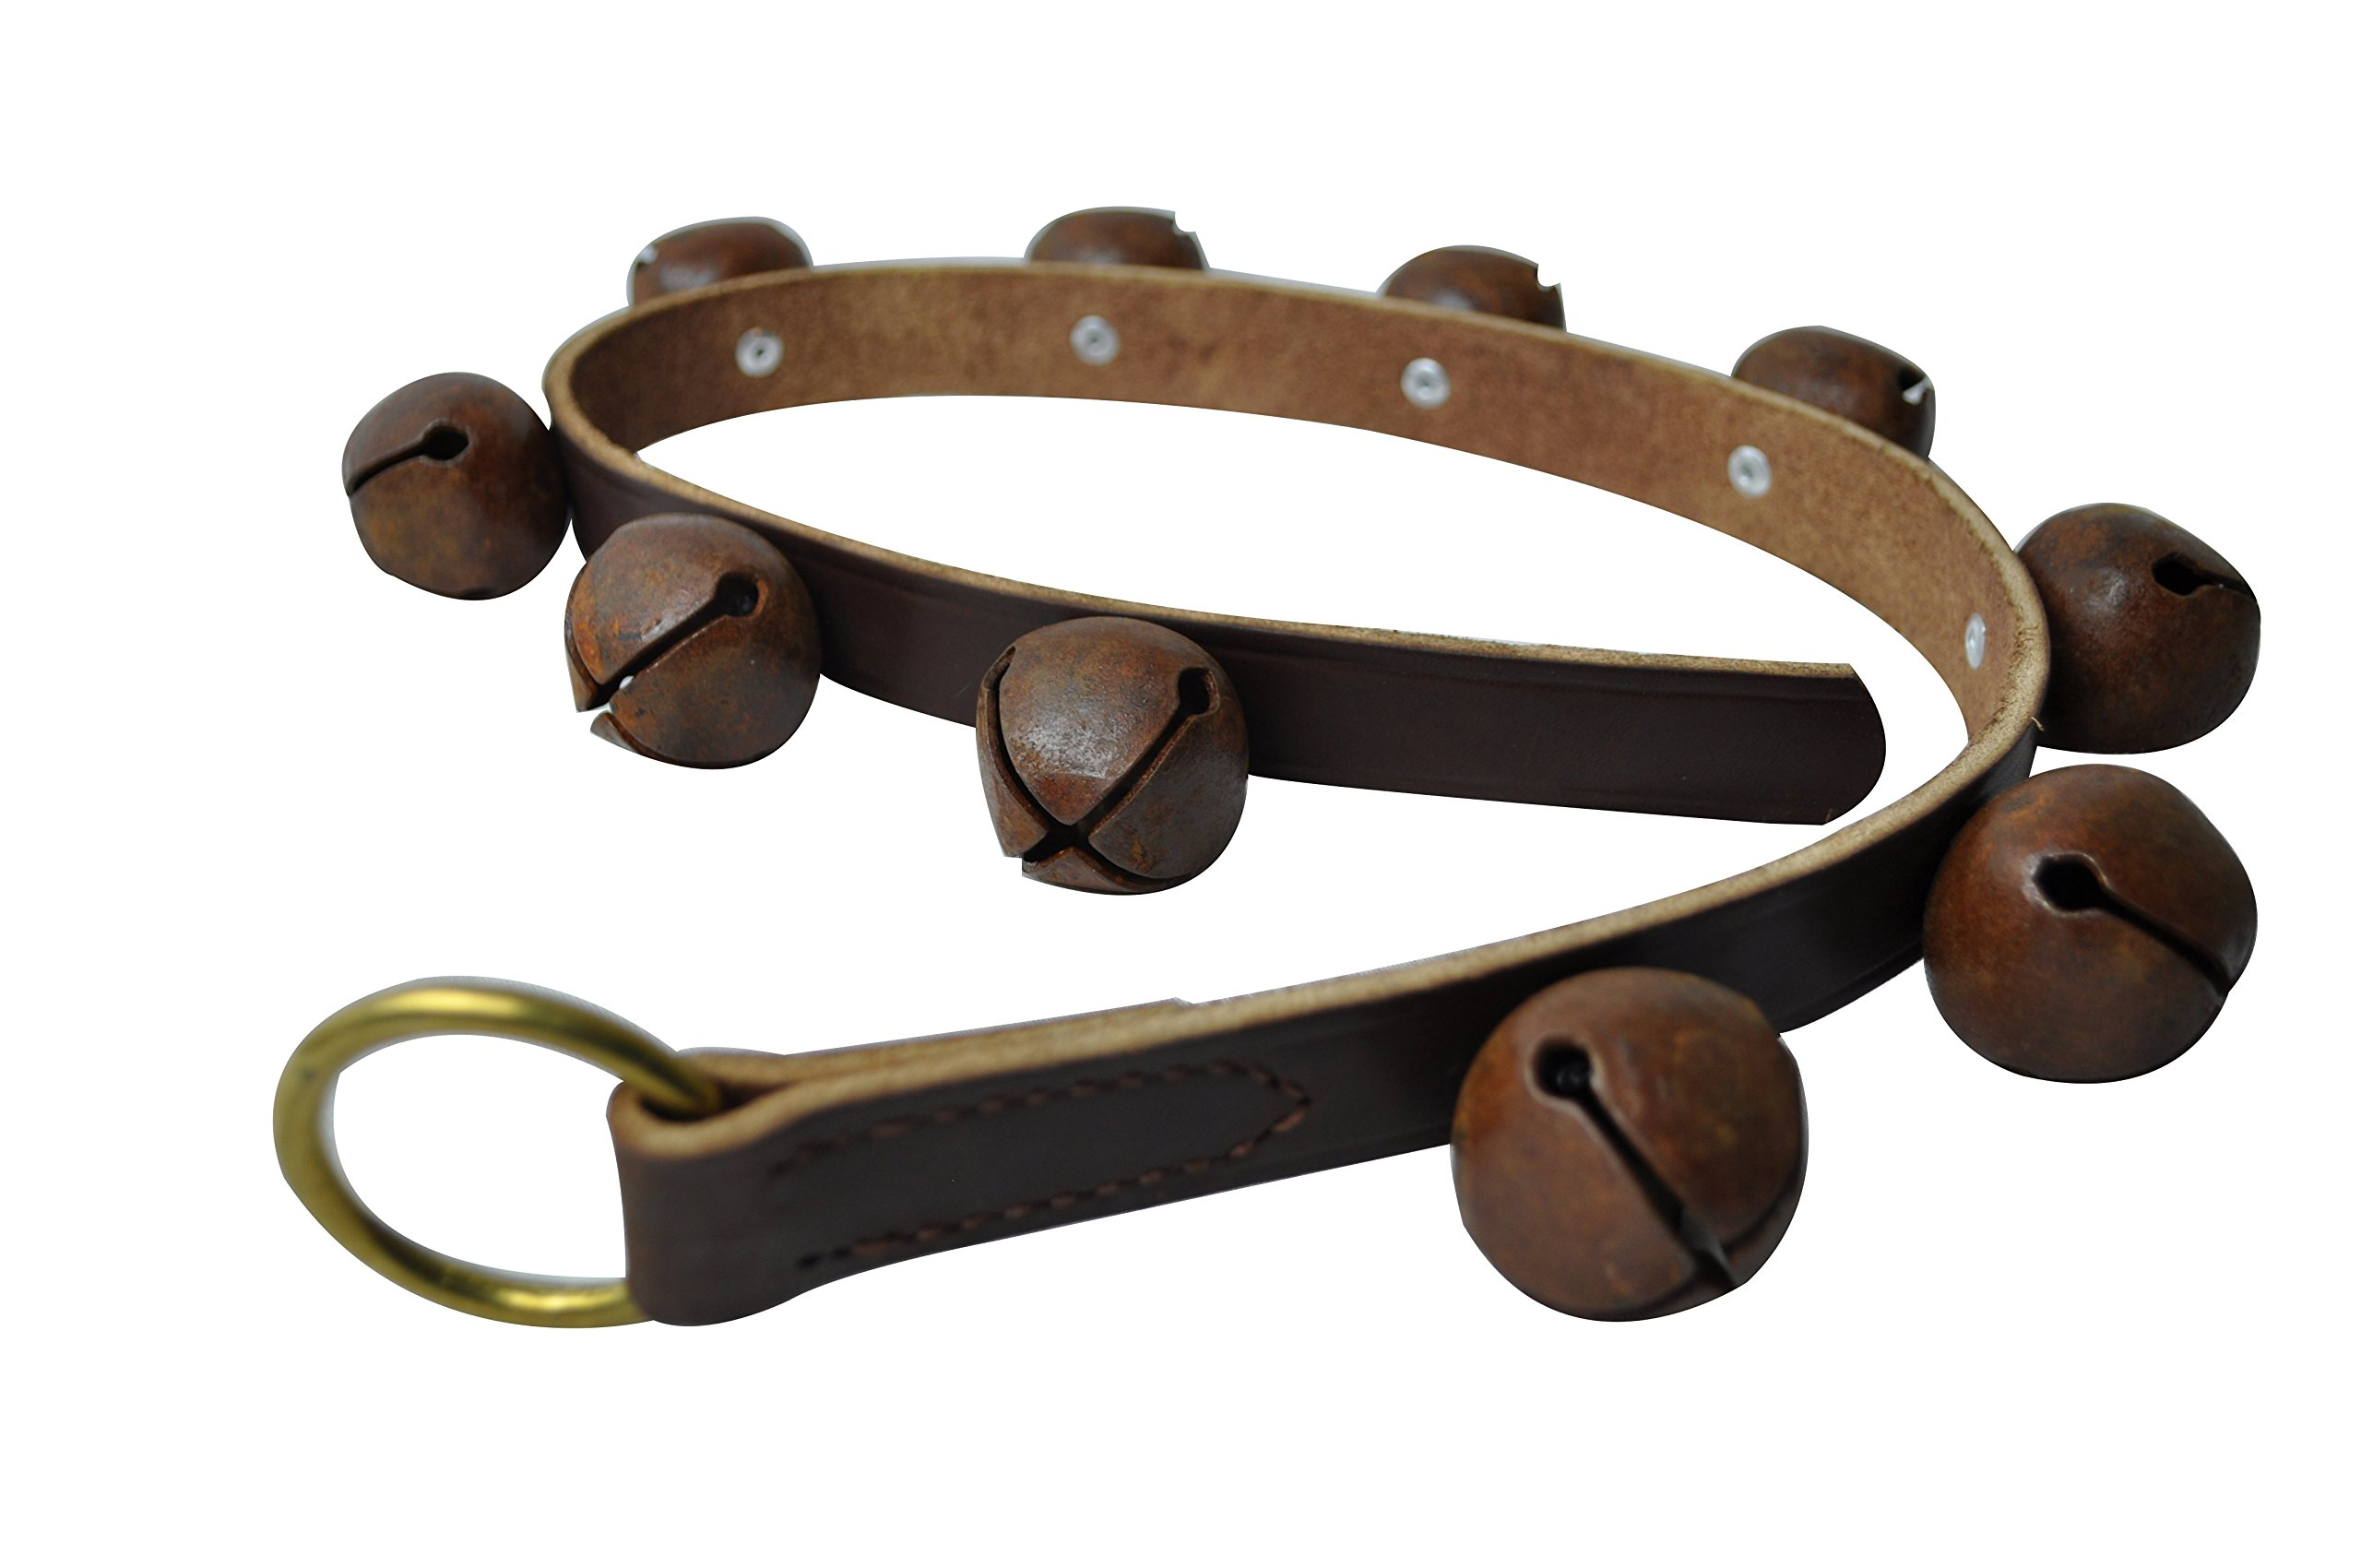 "Hope Woodworking Rustic Bells, 30"" Brown Leather Strip, 10 Antique Vintage Finish Brass Plated Bells"